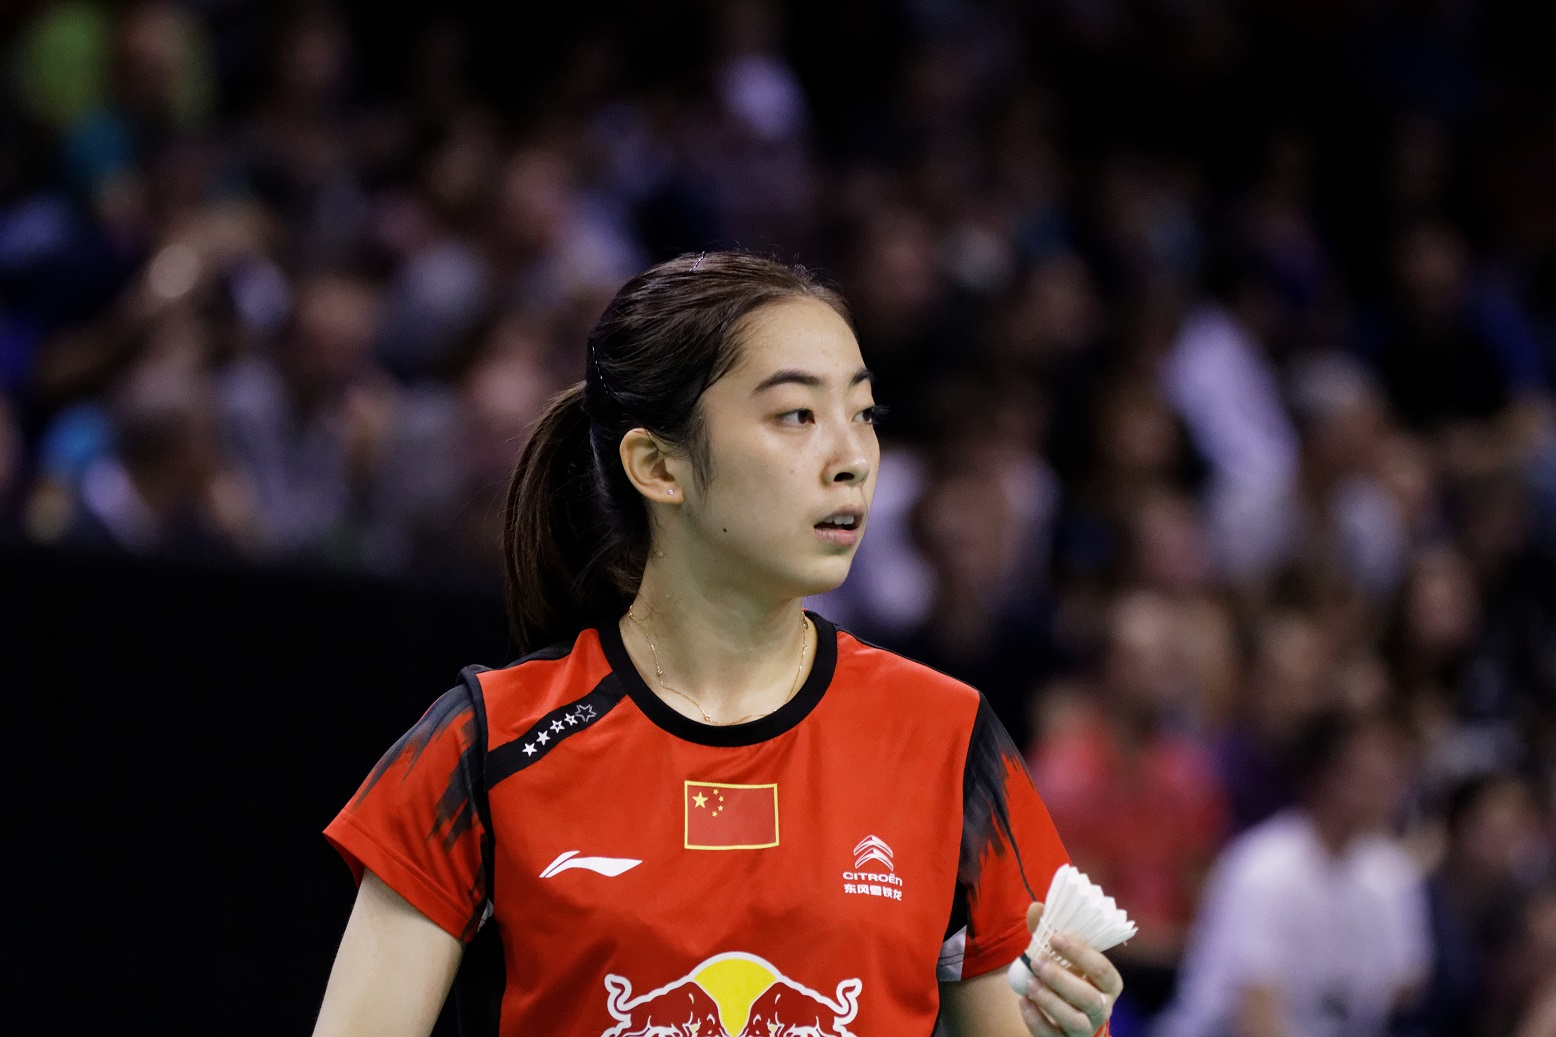 Top 5 Female Badminton Players In The World 2015